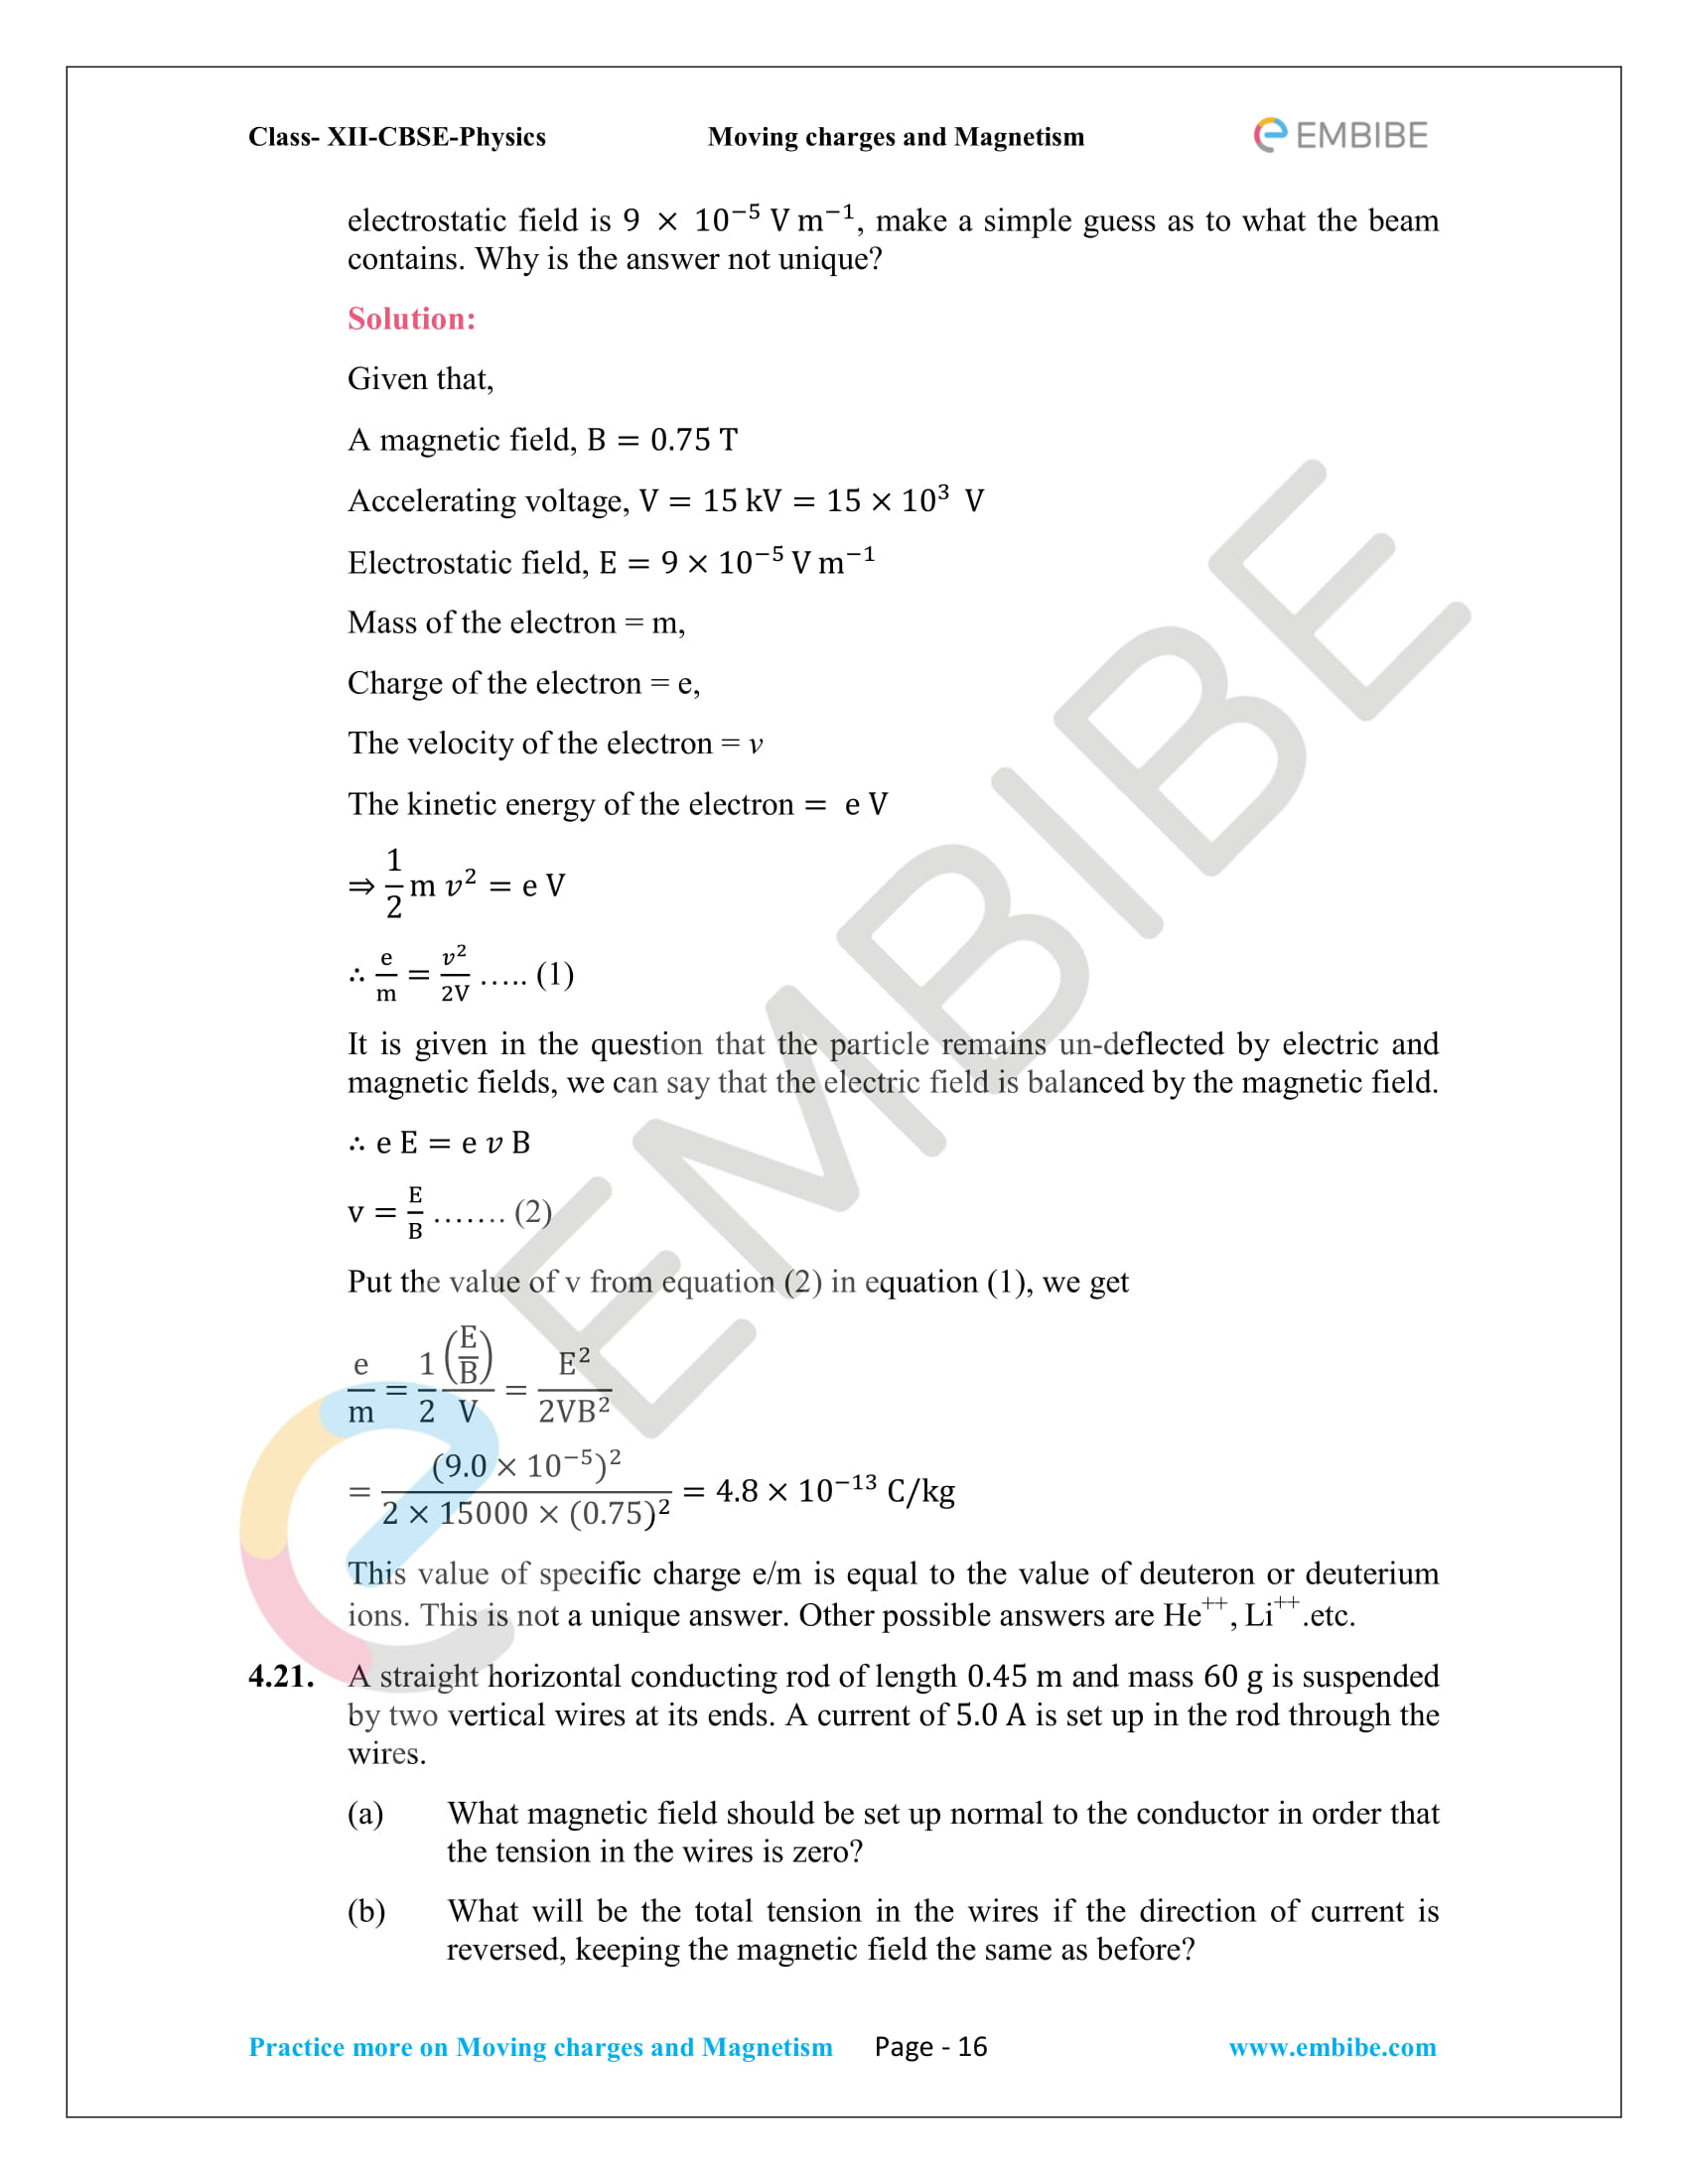 NCERT_Grade 12_Physics_Ch_04_Moving Charges and Magnetism-16